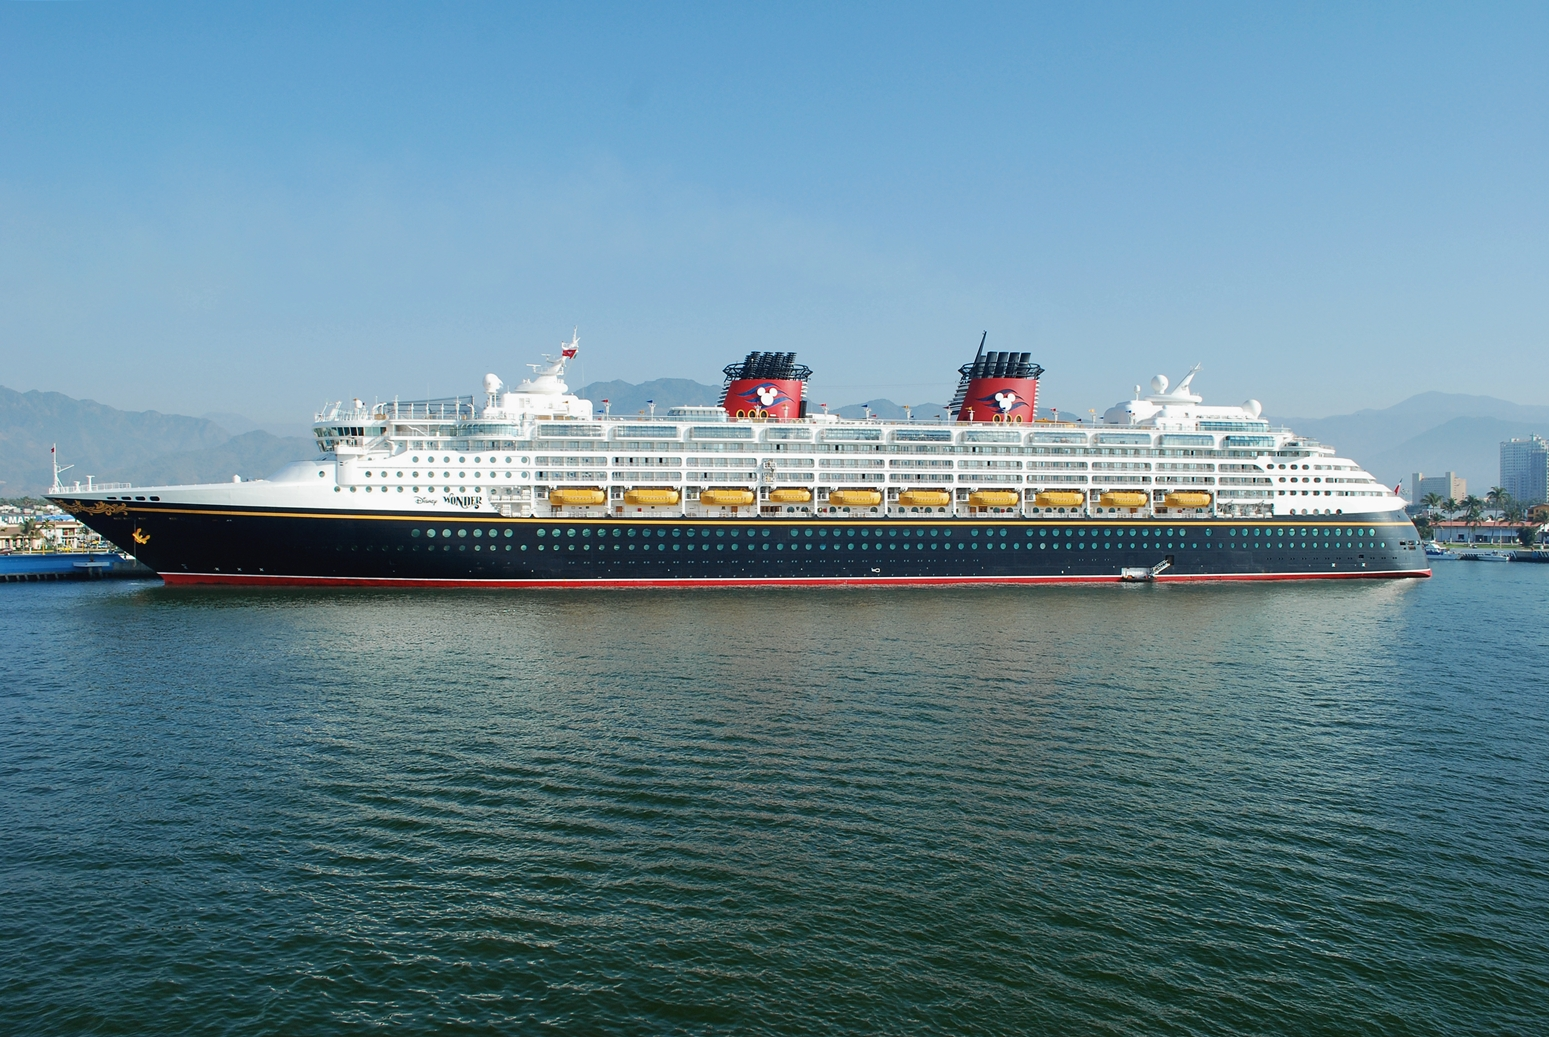 Disney Cruise Line Wikipedia - Is disney building a new cruise ship